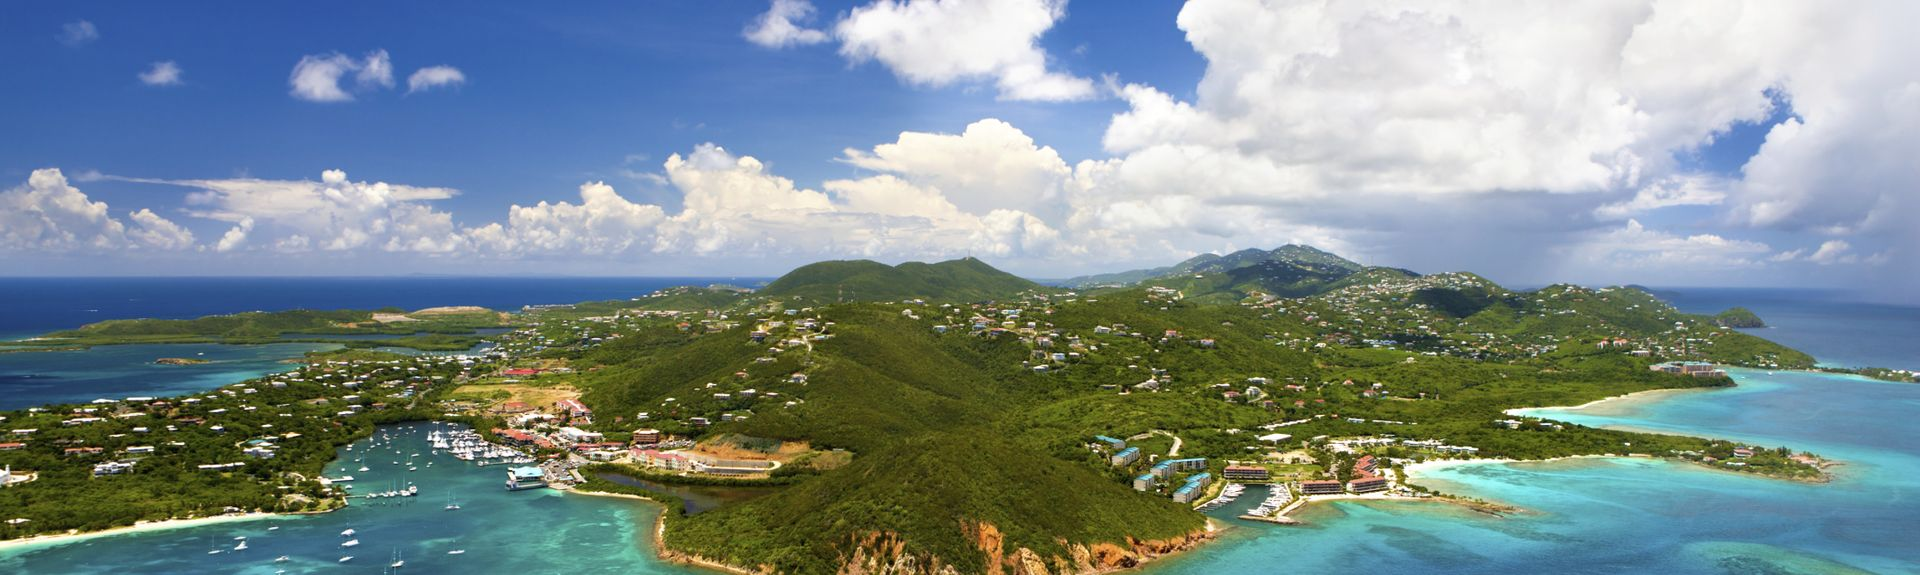 East End, Saint Thomas, US Virgin Islands